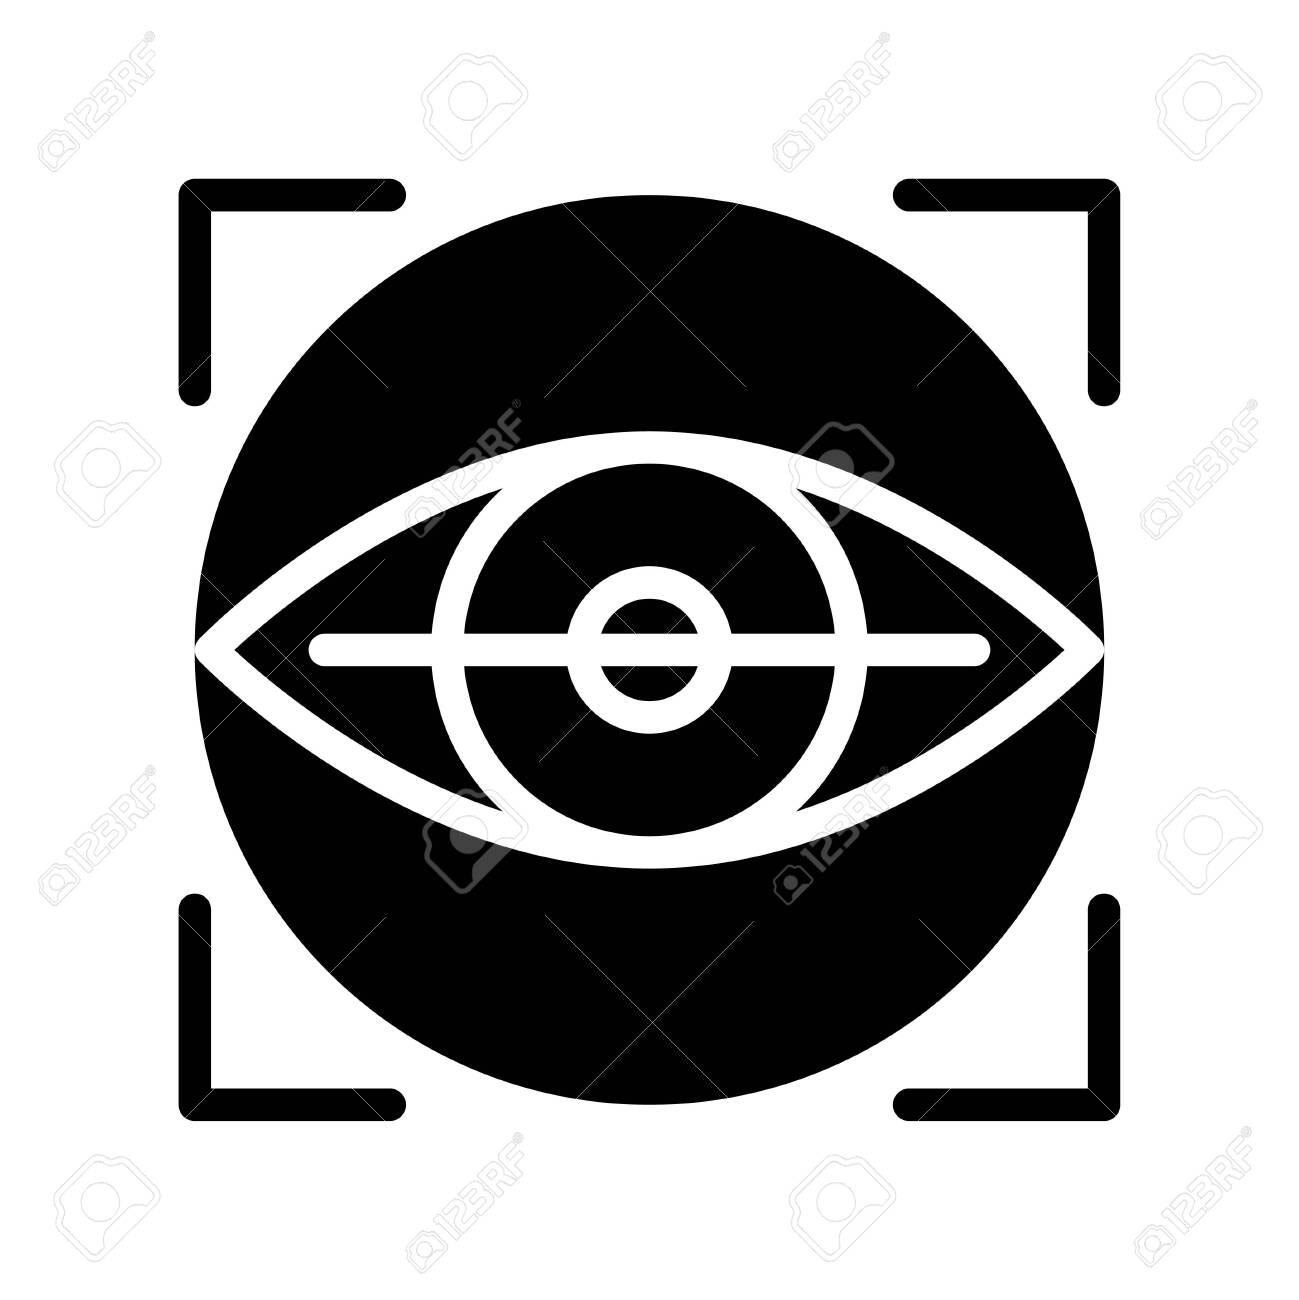 Retinal scan vector illustration, Future technology solid design icon - 136140003